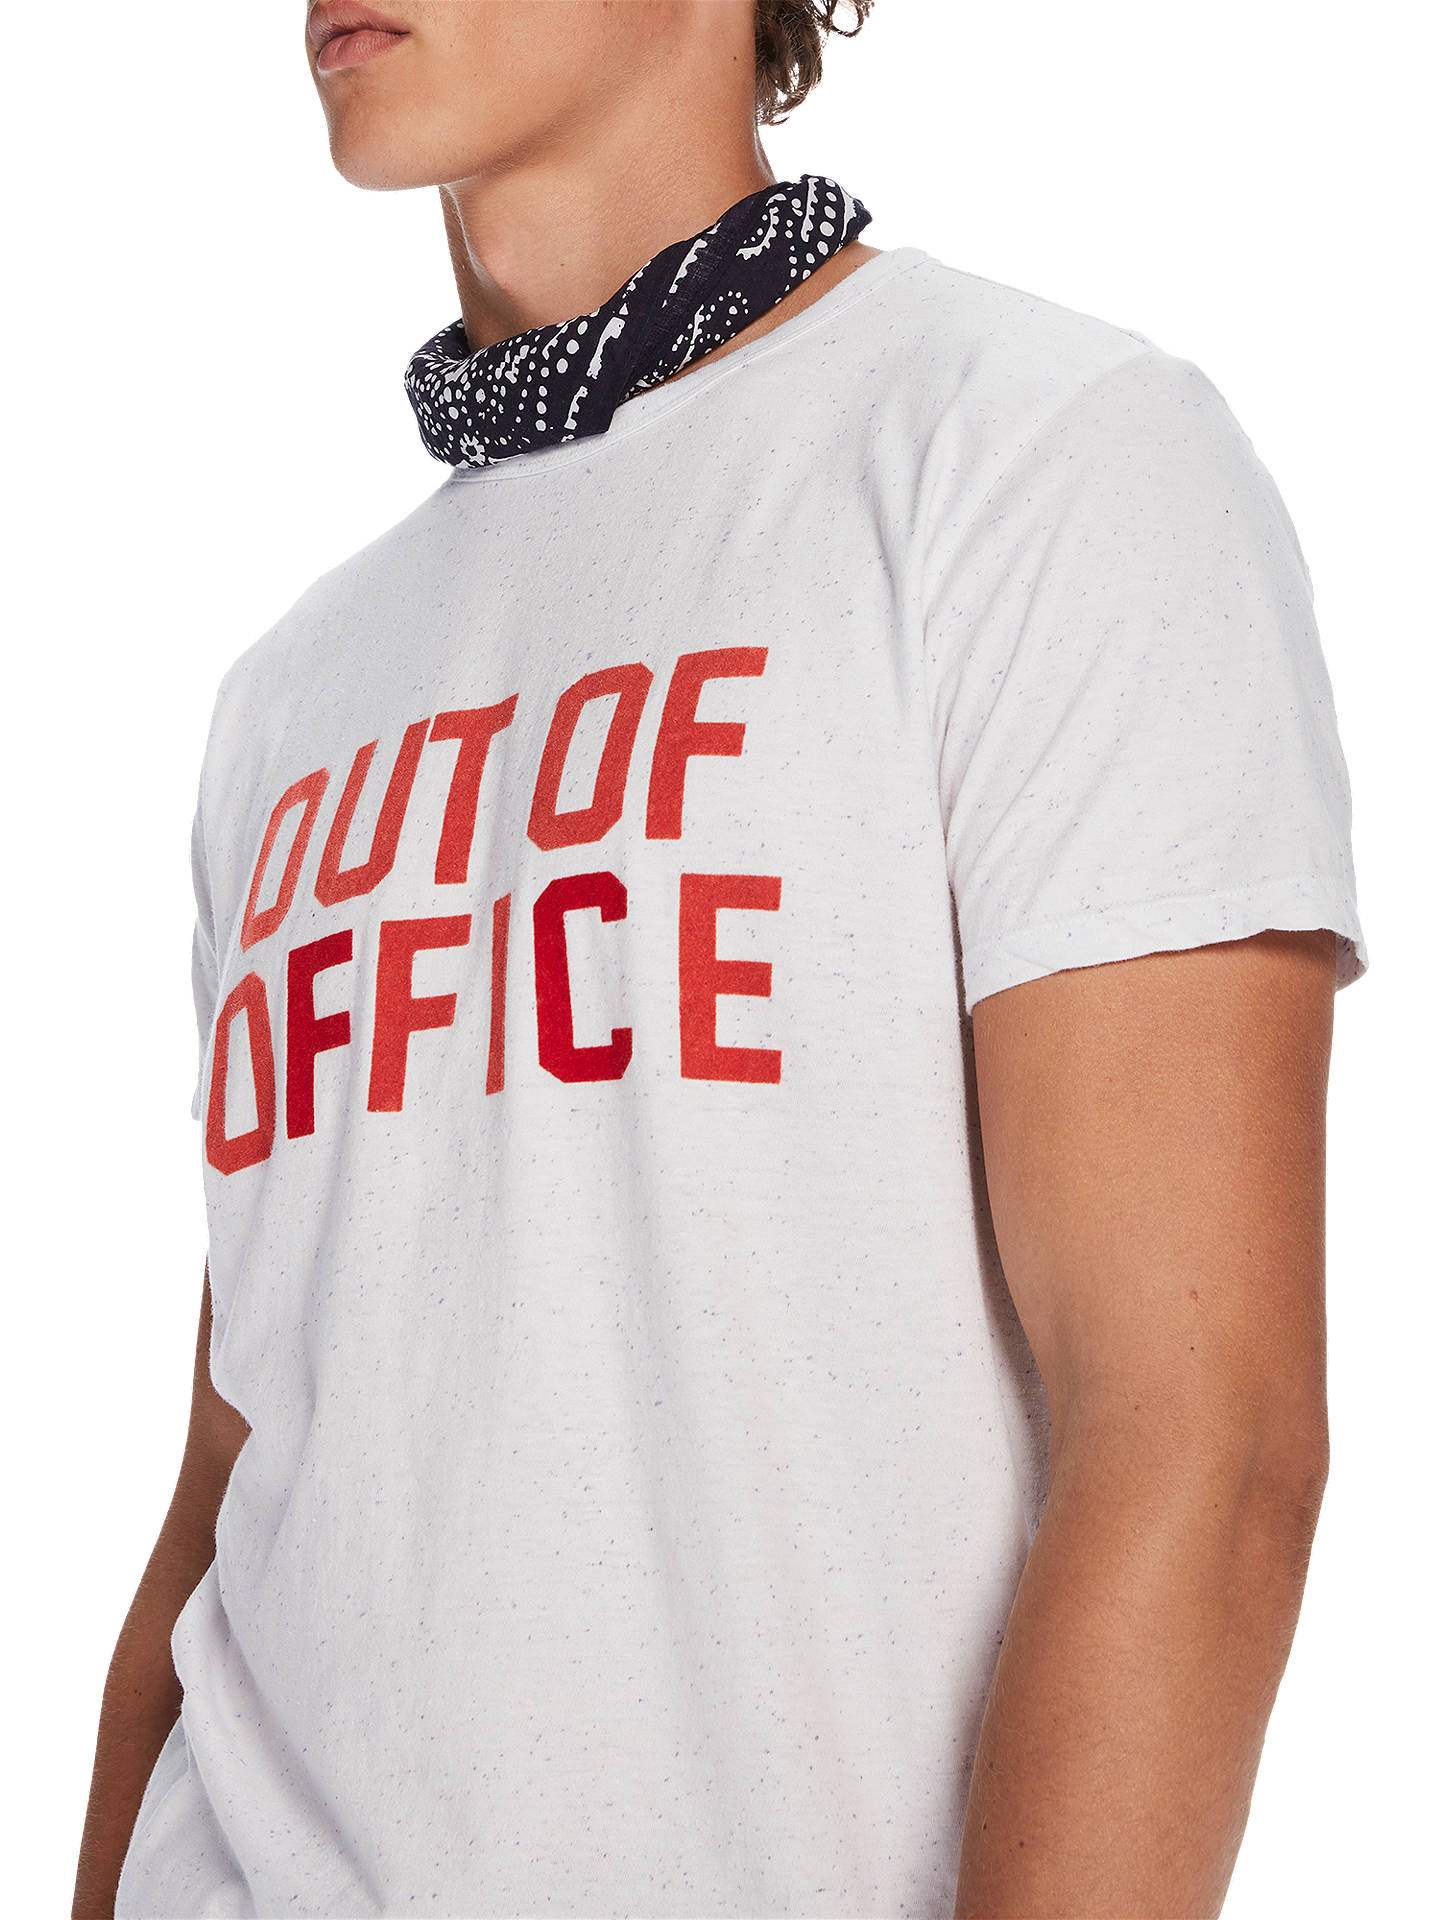 c87ffe950f23 Scotch & Soda Out Of Office T-Shirt, White at John Lewis & Partners